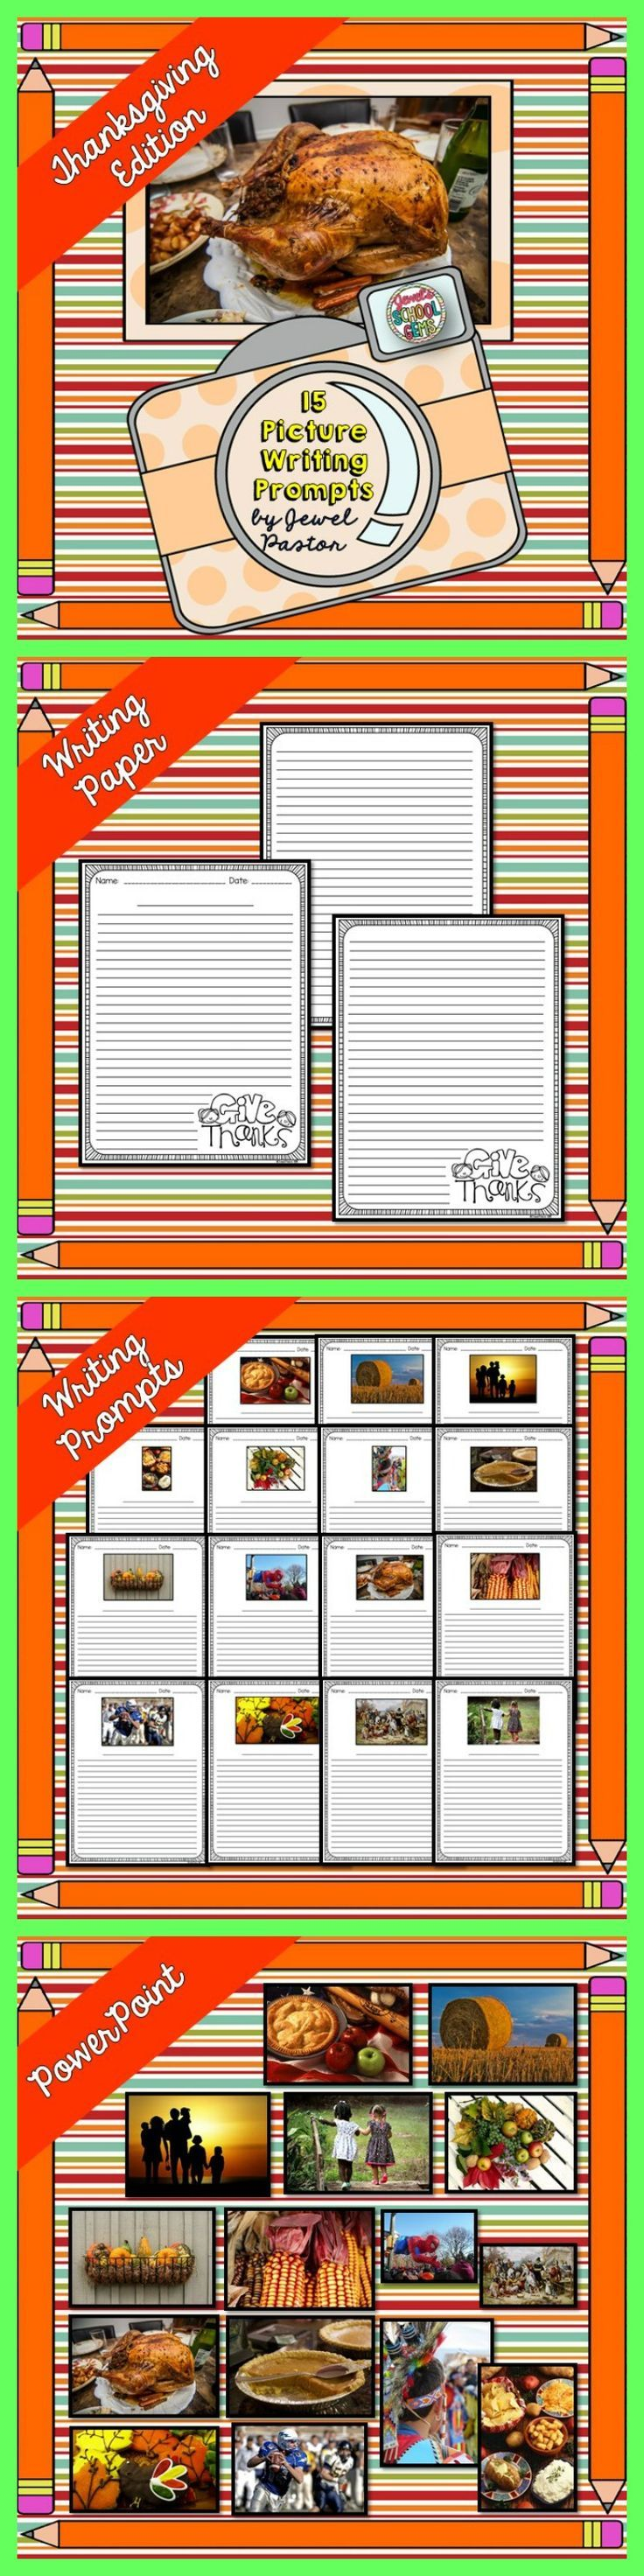 Thanksgiving Writing  Thanksgiving Picture Writing Prompts   This resource contains: * A PDF file composed of 15 sheets with picture writing prompts and two Thanksgiving writing paper/sheets. * A PowerPoint file with the pictures used in the sheets to give you an option to show the images through the Interactive Whiteboard.